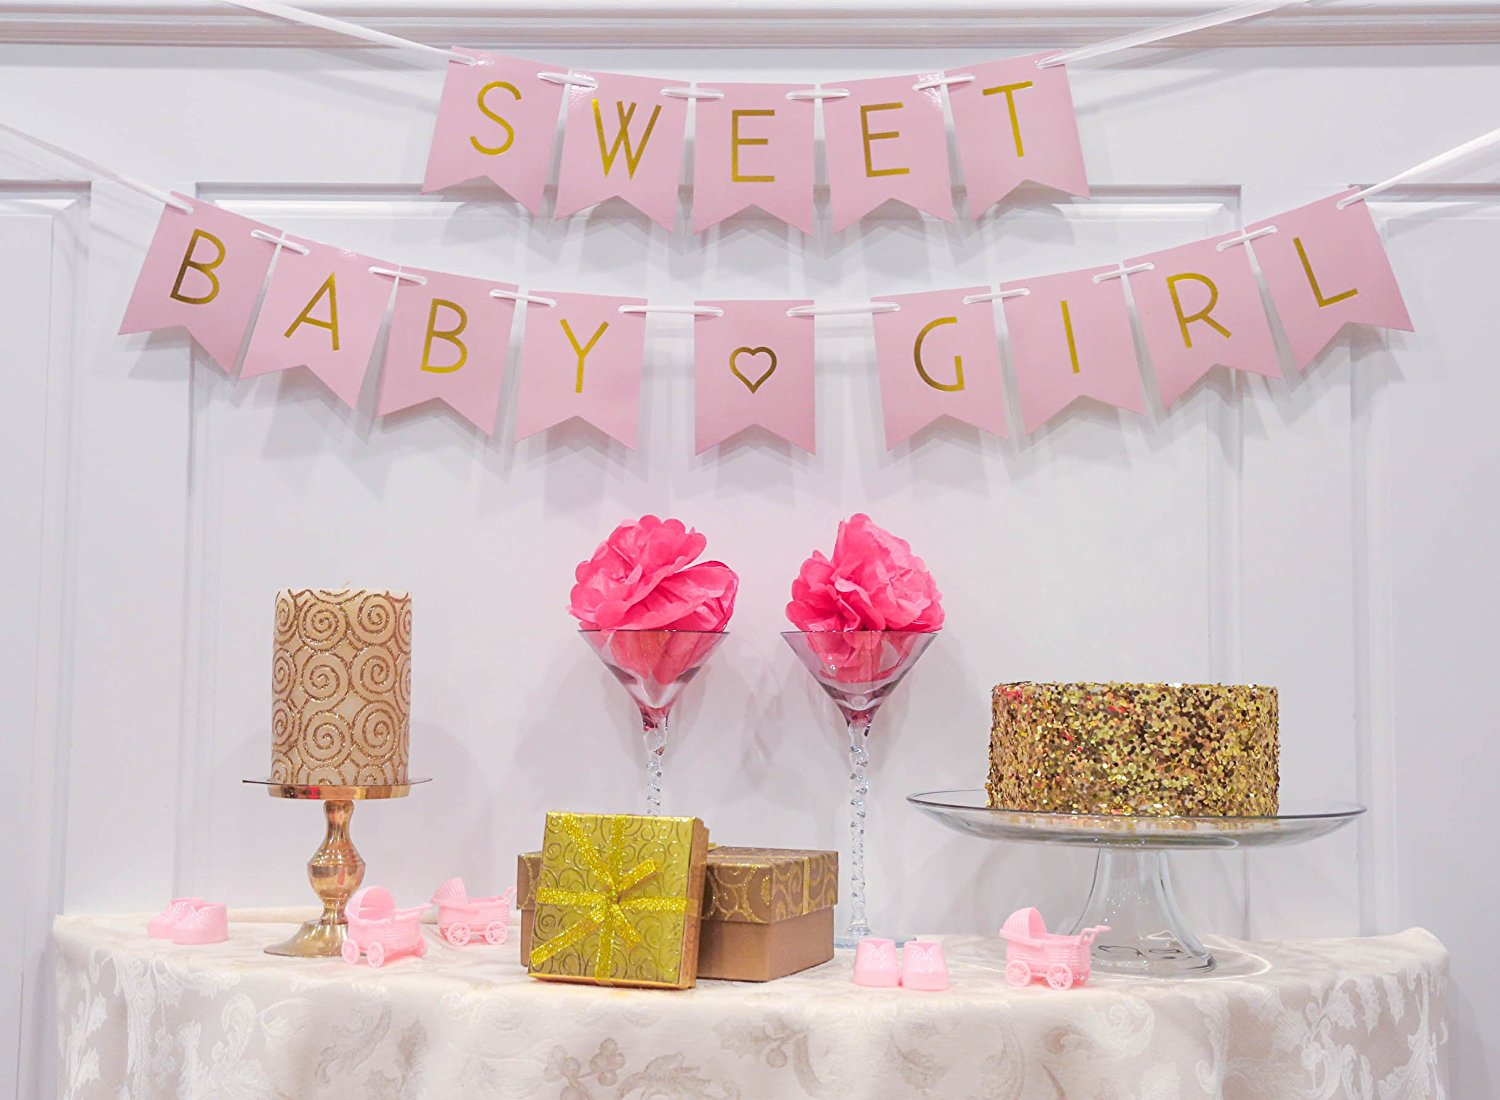 Full Size of Baby Shower:89+ Indulging Baby Shower Banner Picture Inspirations Baby Shower Banner Amazoncom Baby Shower Decorations For Pastel Pink Sweet Amazoncom Baby Shower Decorations For Pastel Pink Sweet Baby Banner Gender Reveal Baby Announcement Toys Games